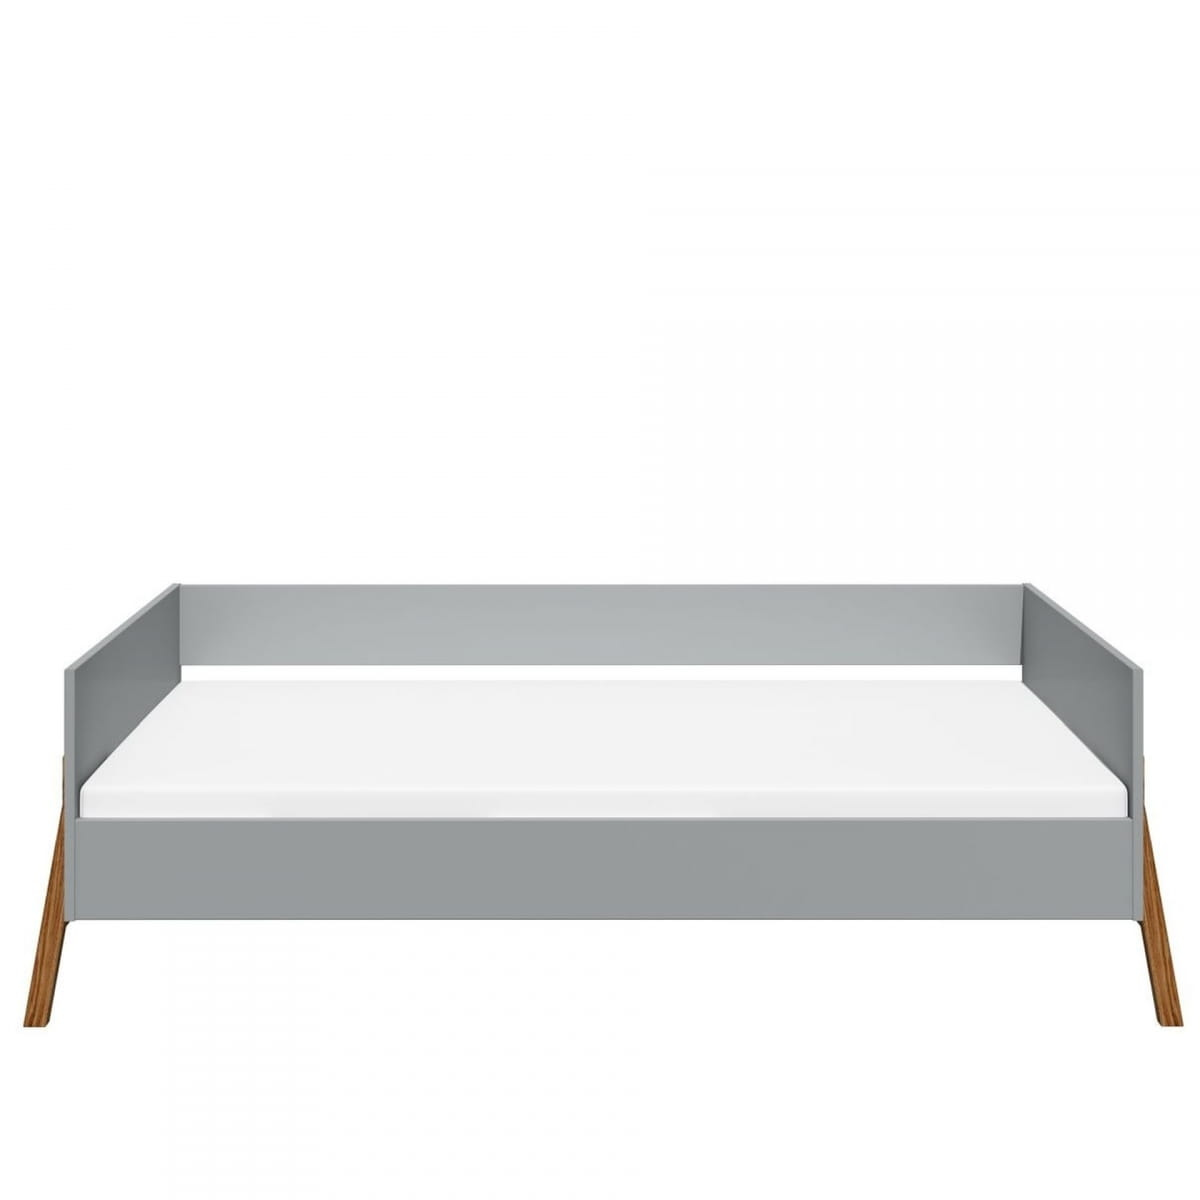 Lotta_gray_bed_80x160_01.jpg